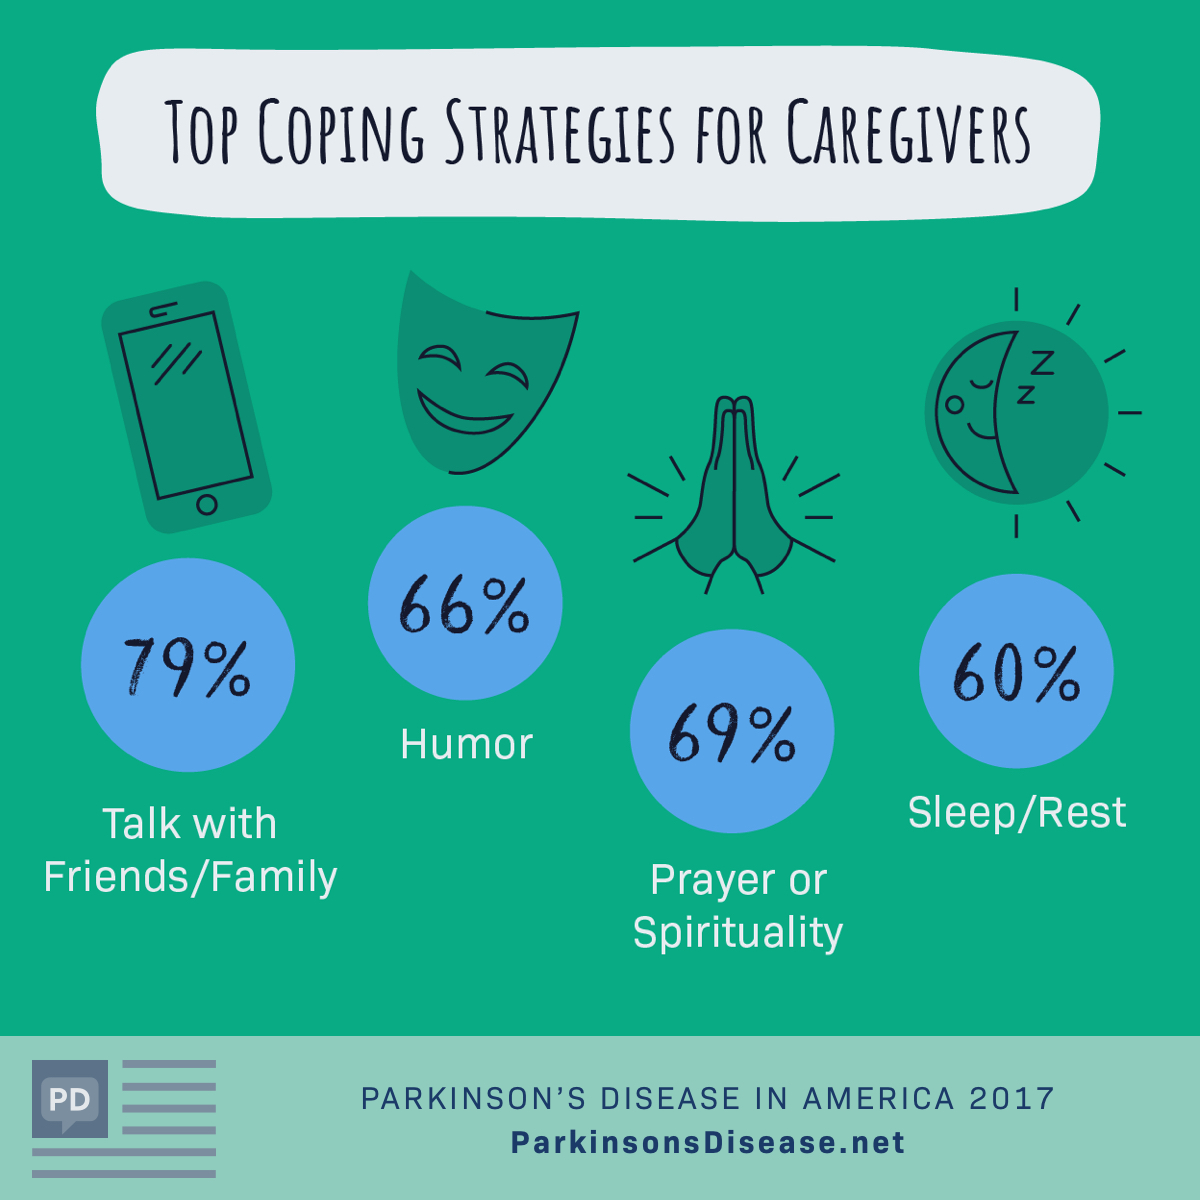 Top coping strategies for Caregivers